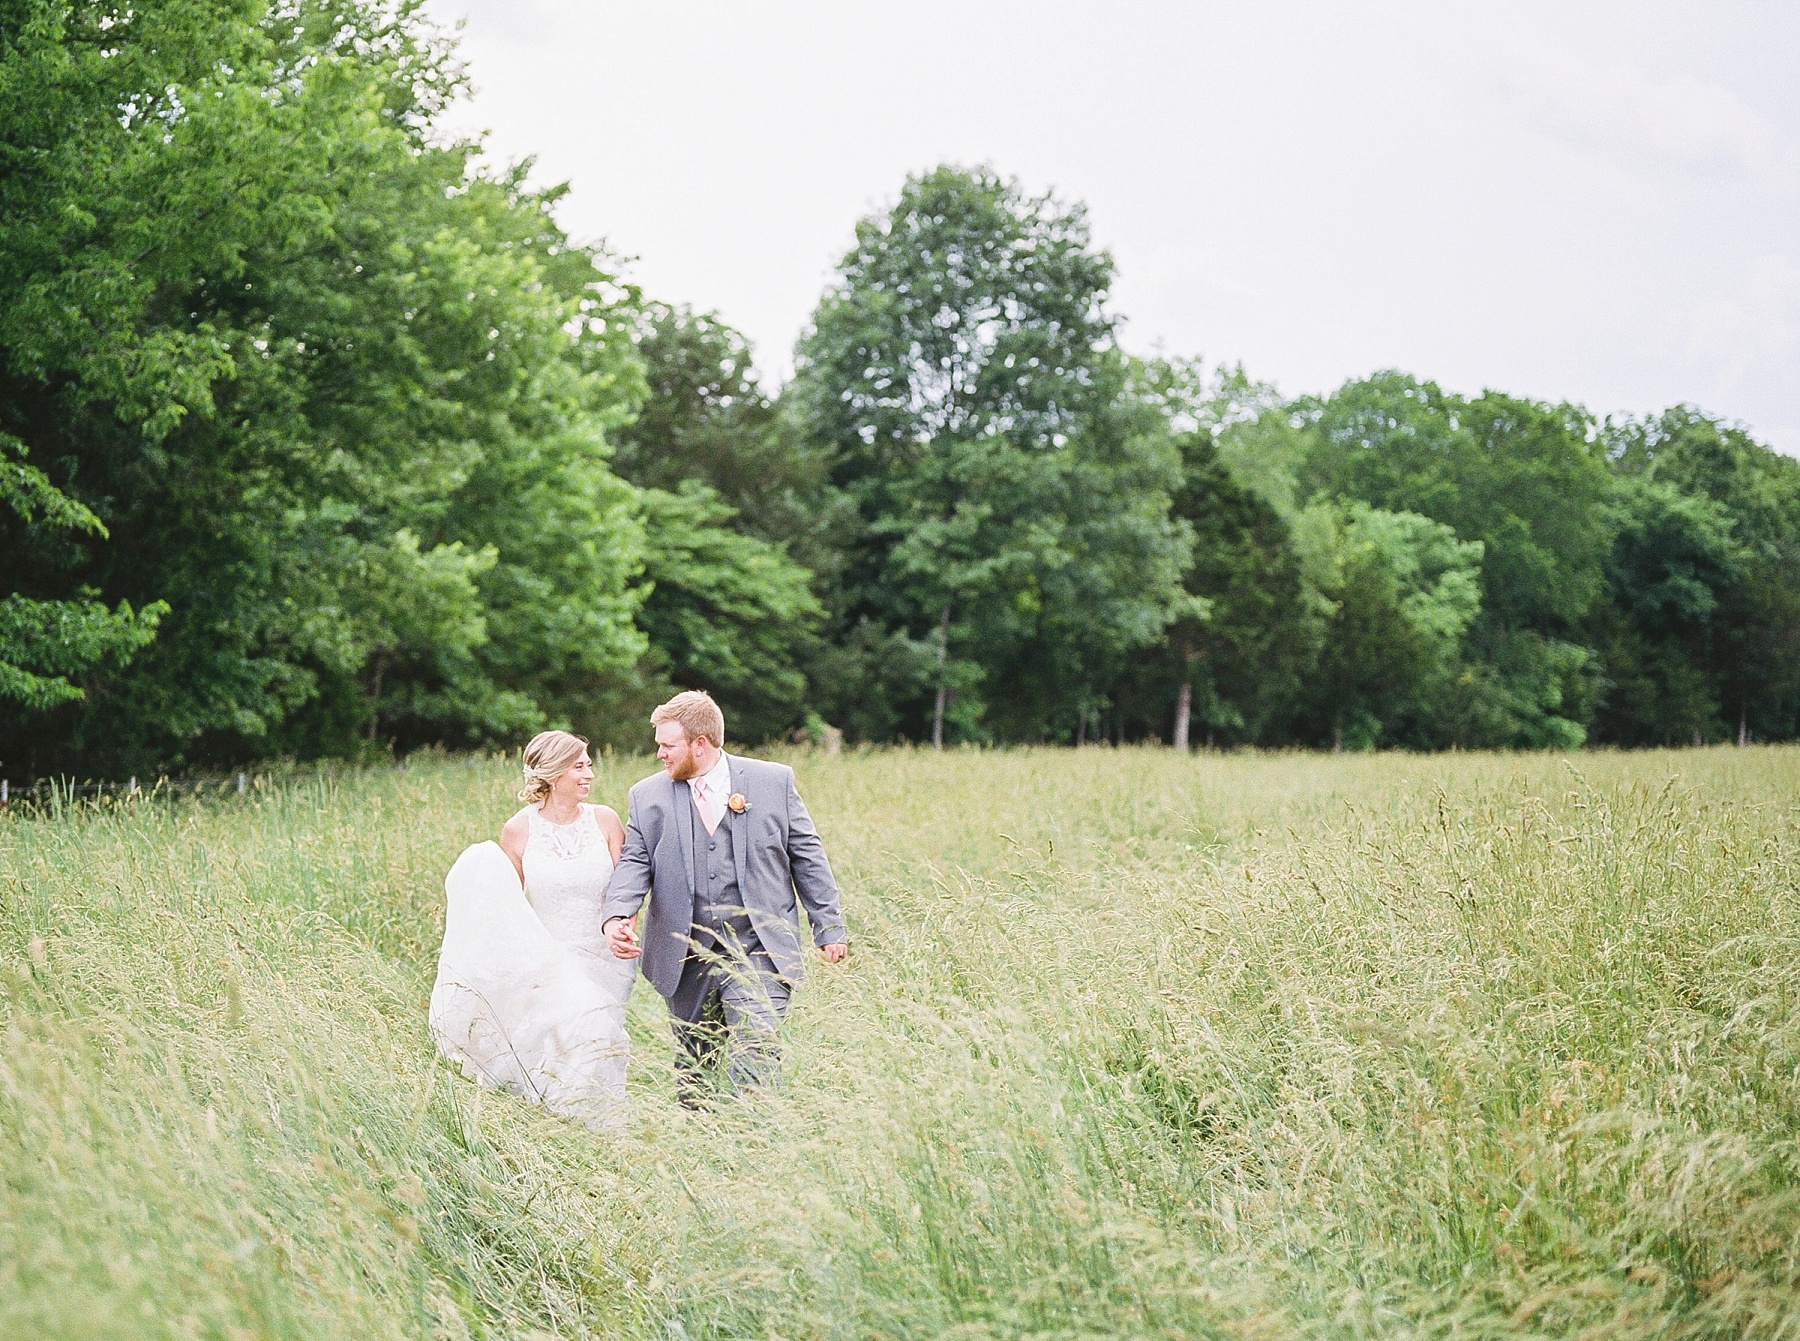 Peach and Dusty Blue Spring Wedding in Rolling Hills of Mid Missouri by Kelsi Kliethermes Photography Best Missouri and Maui Wedding Photographer_0019.jpg